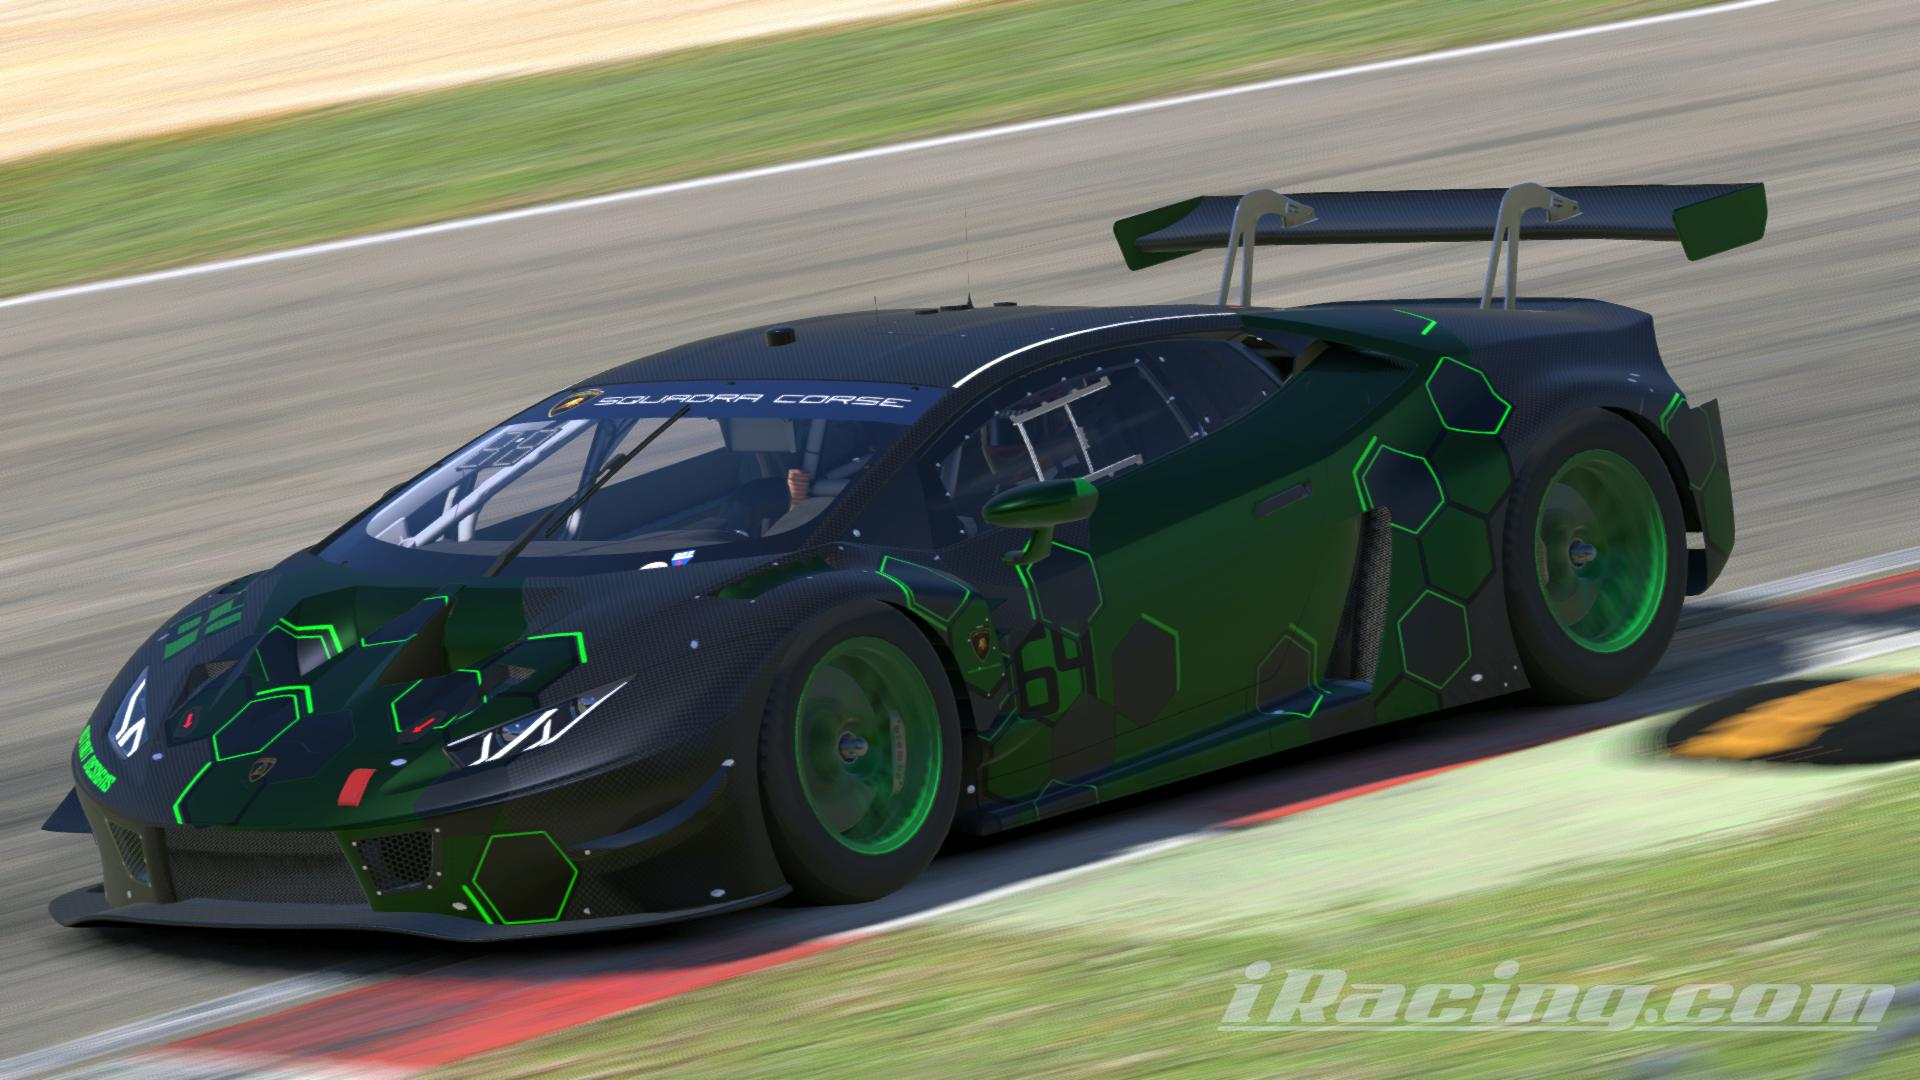 Preview of Green Hex lambo GT3 Livery by James R.